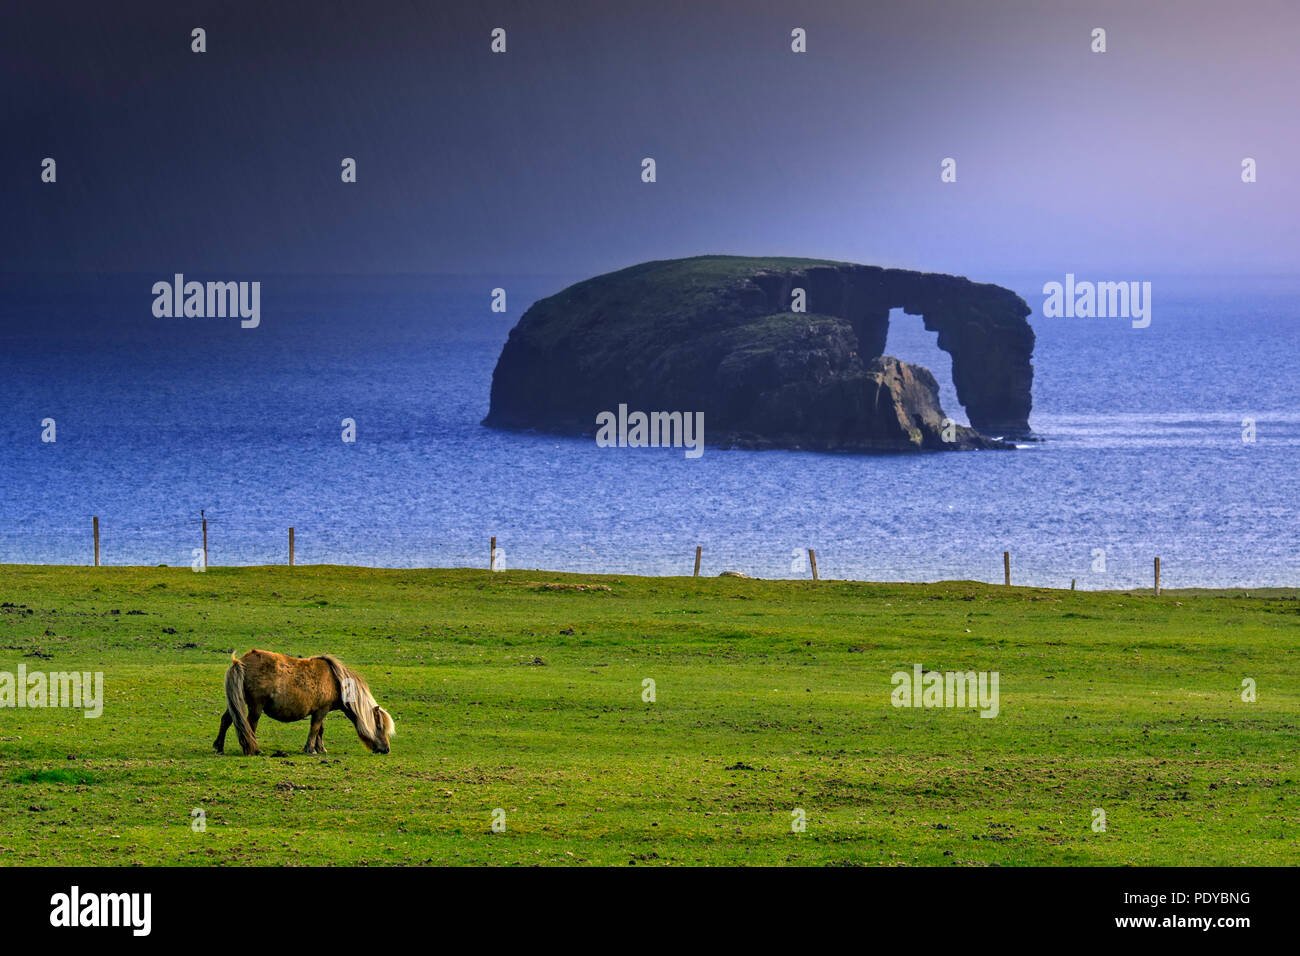 Shetland pony and Dore Holm, small islet with natural arch off the coast of Stenness, Esha Ness / Eshaness during downpour  on Mainland Shetland, Scot - Stock Image